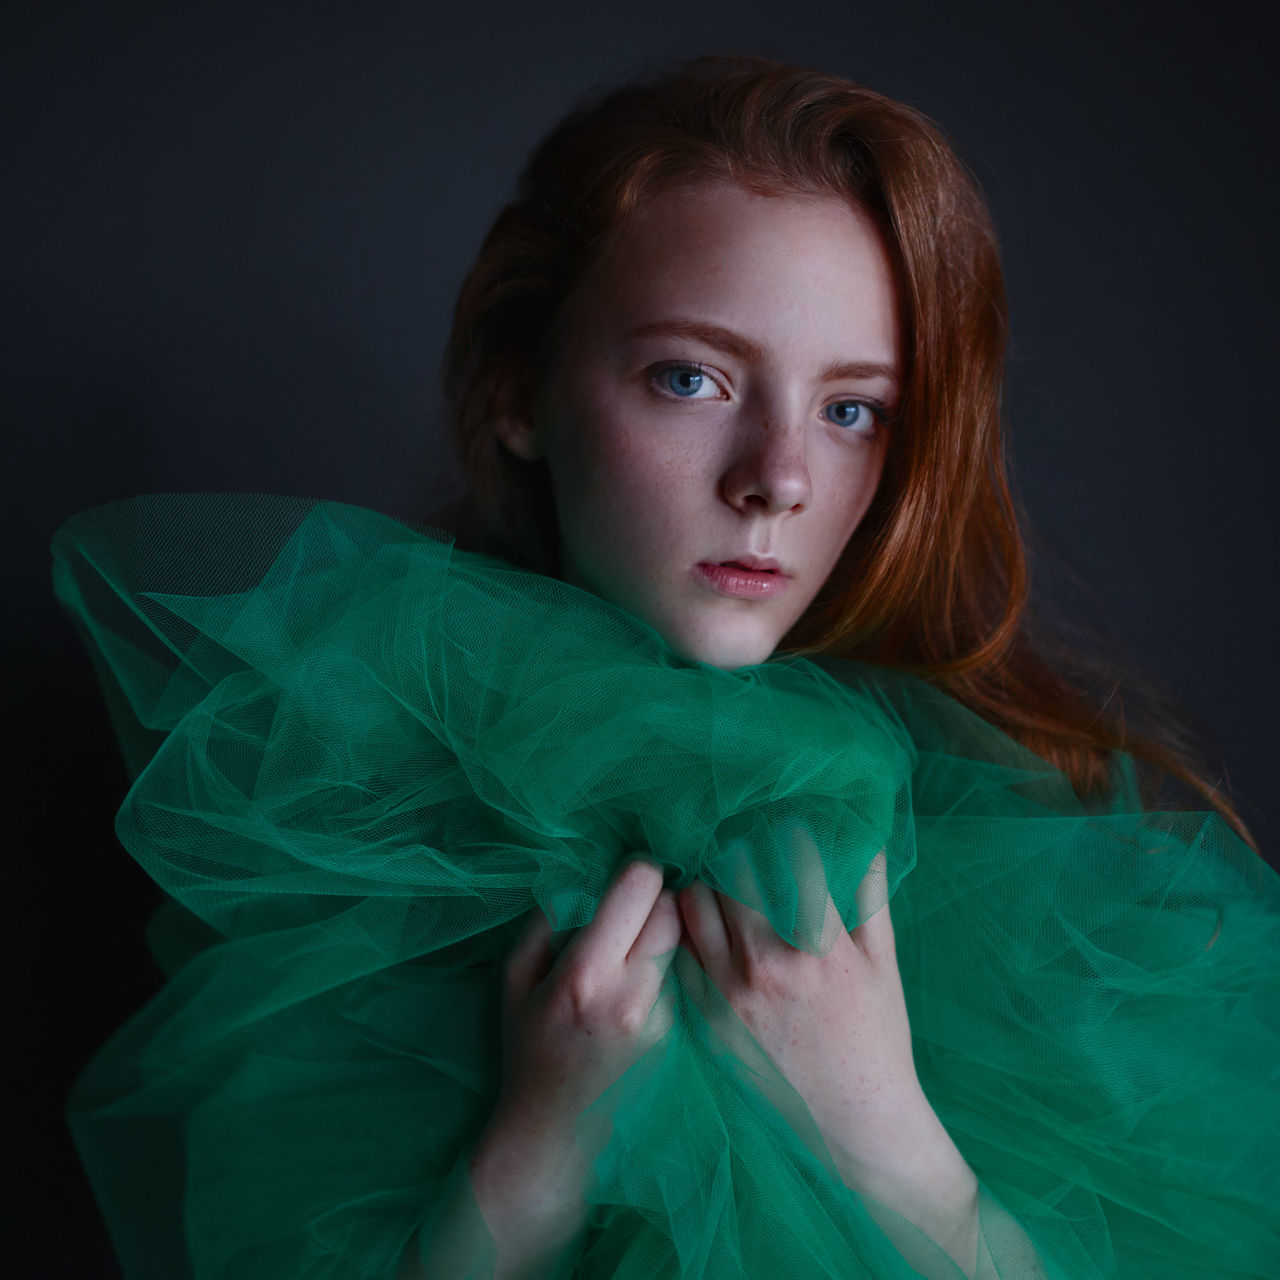 Ginger and honey https://www.instagram.com/eglelaurinavice/ Adult Adults Only Beautiful Woman Beauty Black Background Close-up Green Color Indoors  Looking At Camera Natural Light Portrait One Person One Young Woman Only People Portrait Portrait Of A Woman Real People Redhead Studio Shot Young Adult Young Women